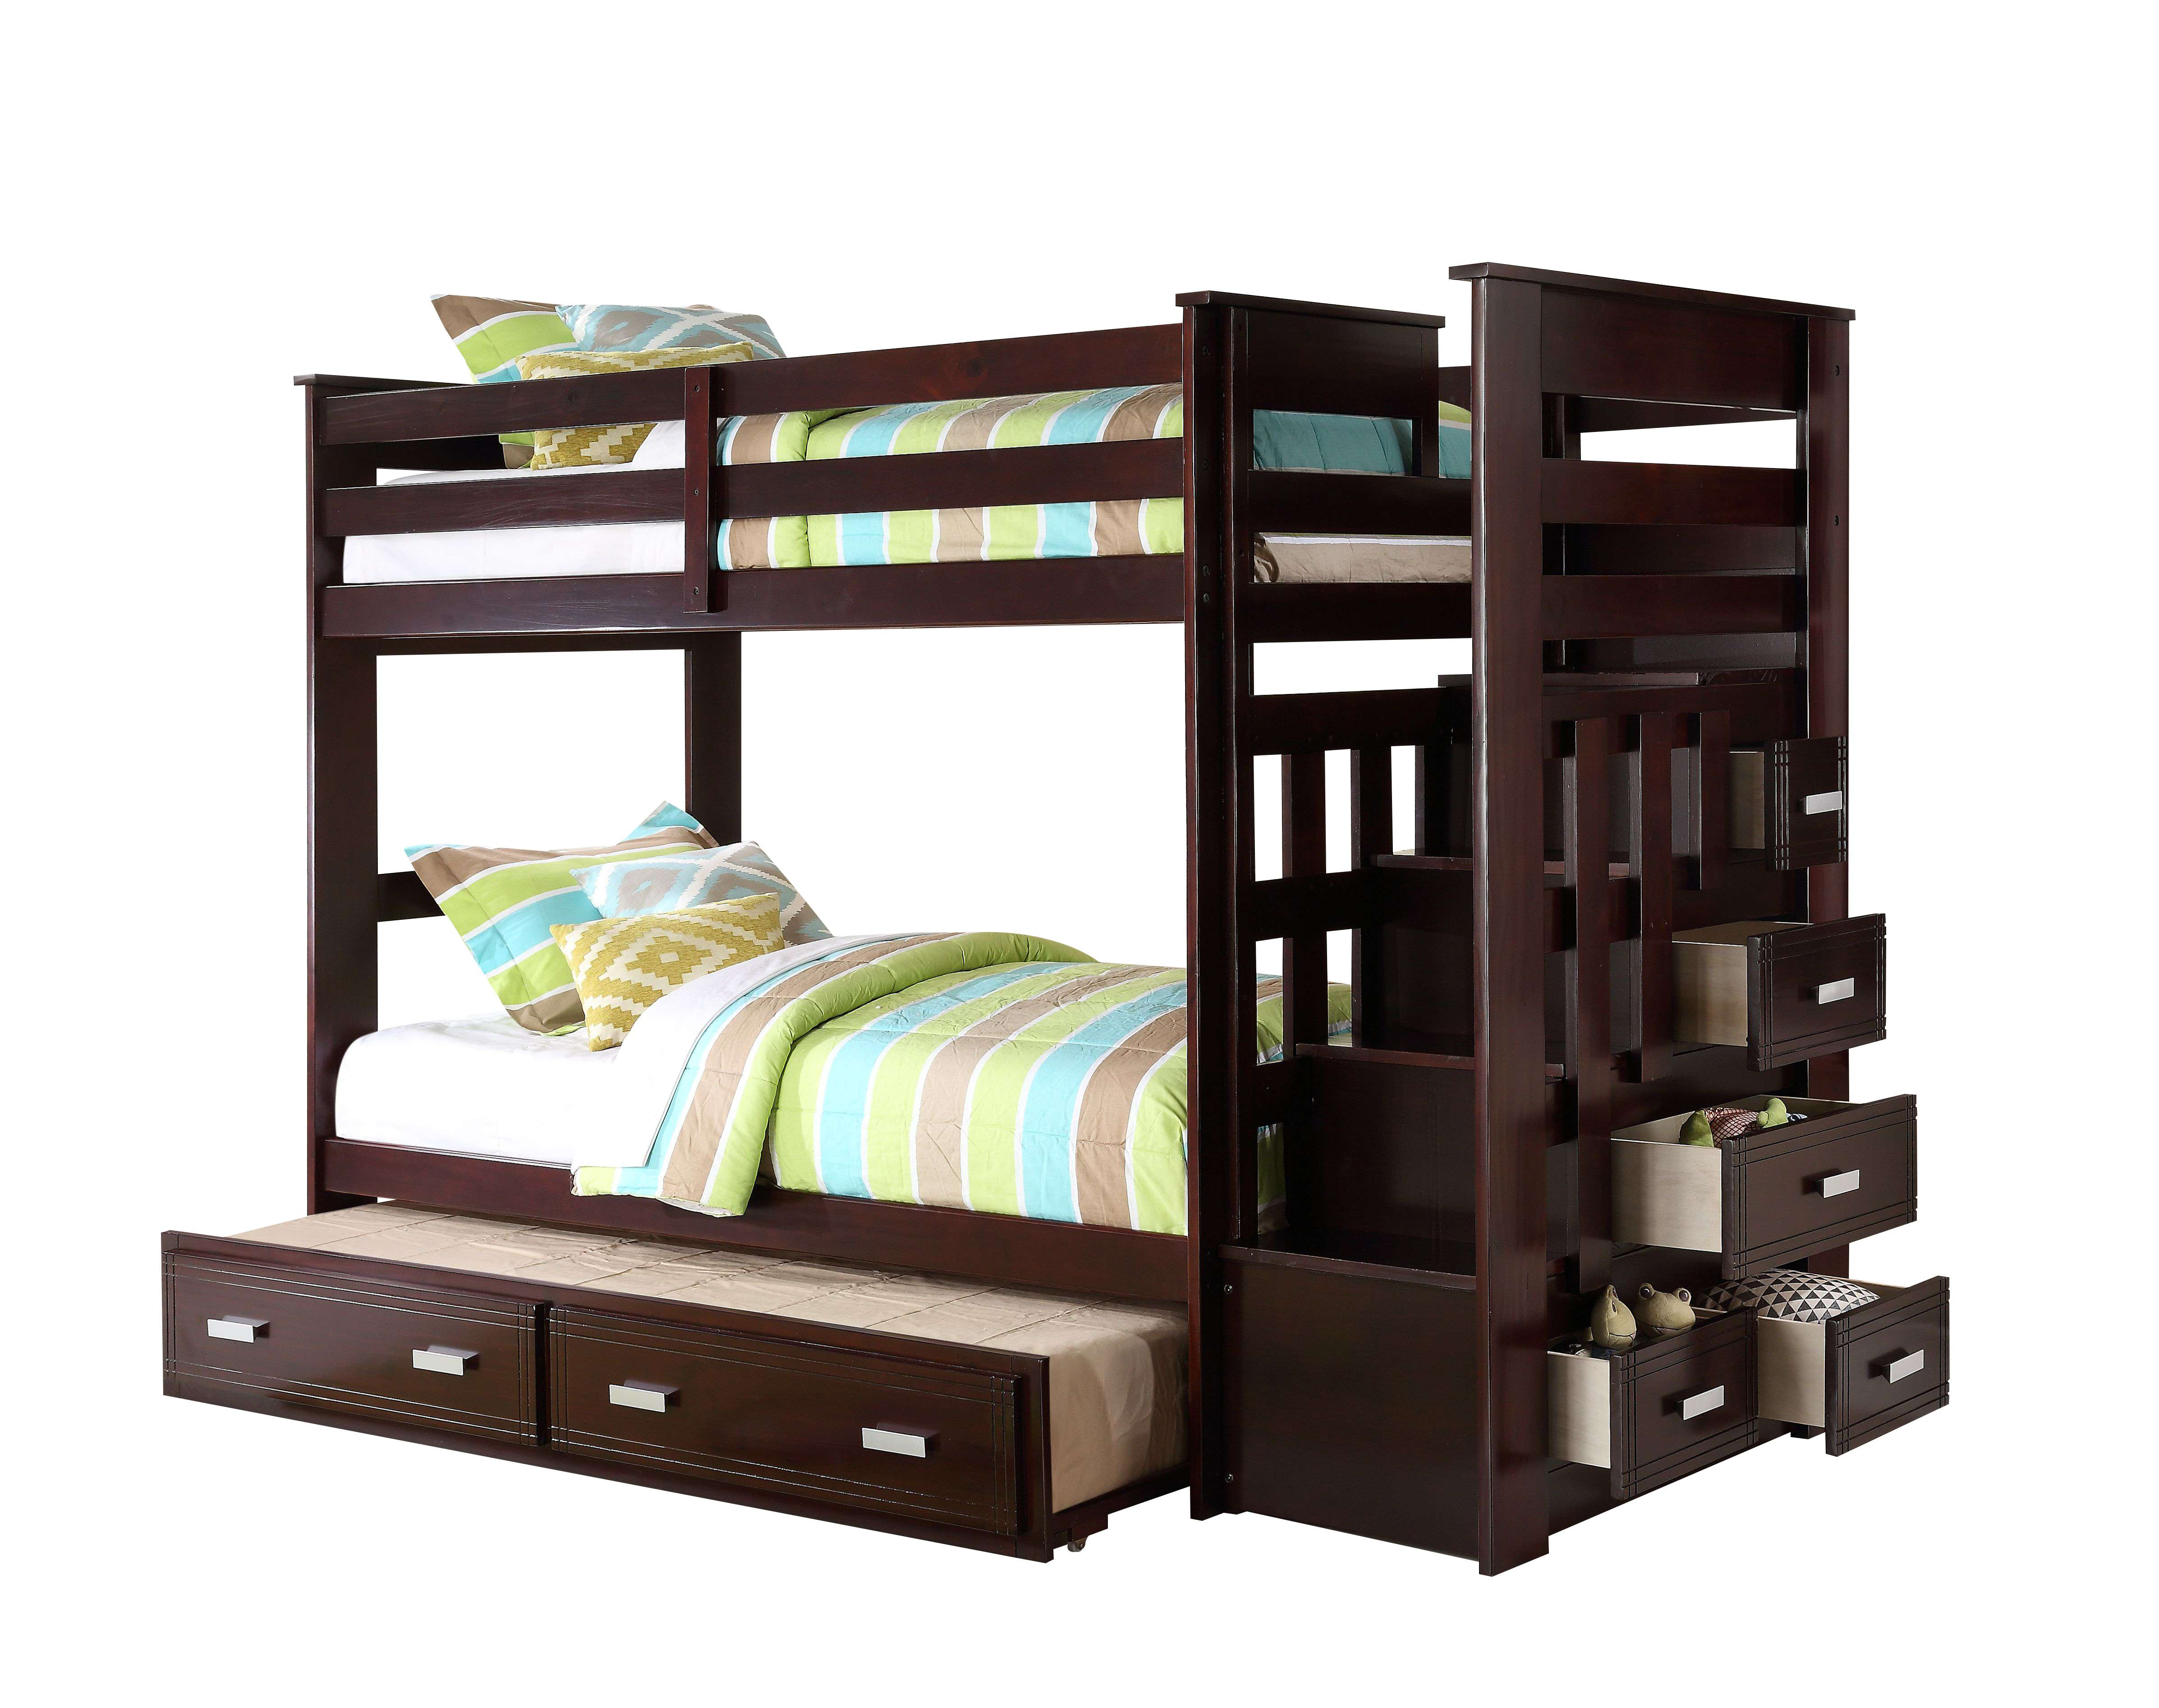 Acme Furniture Allentown Espresso Twintwin Bunk Bed With Storage